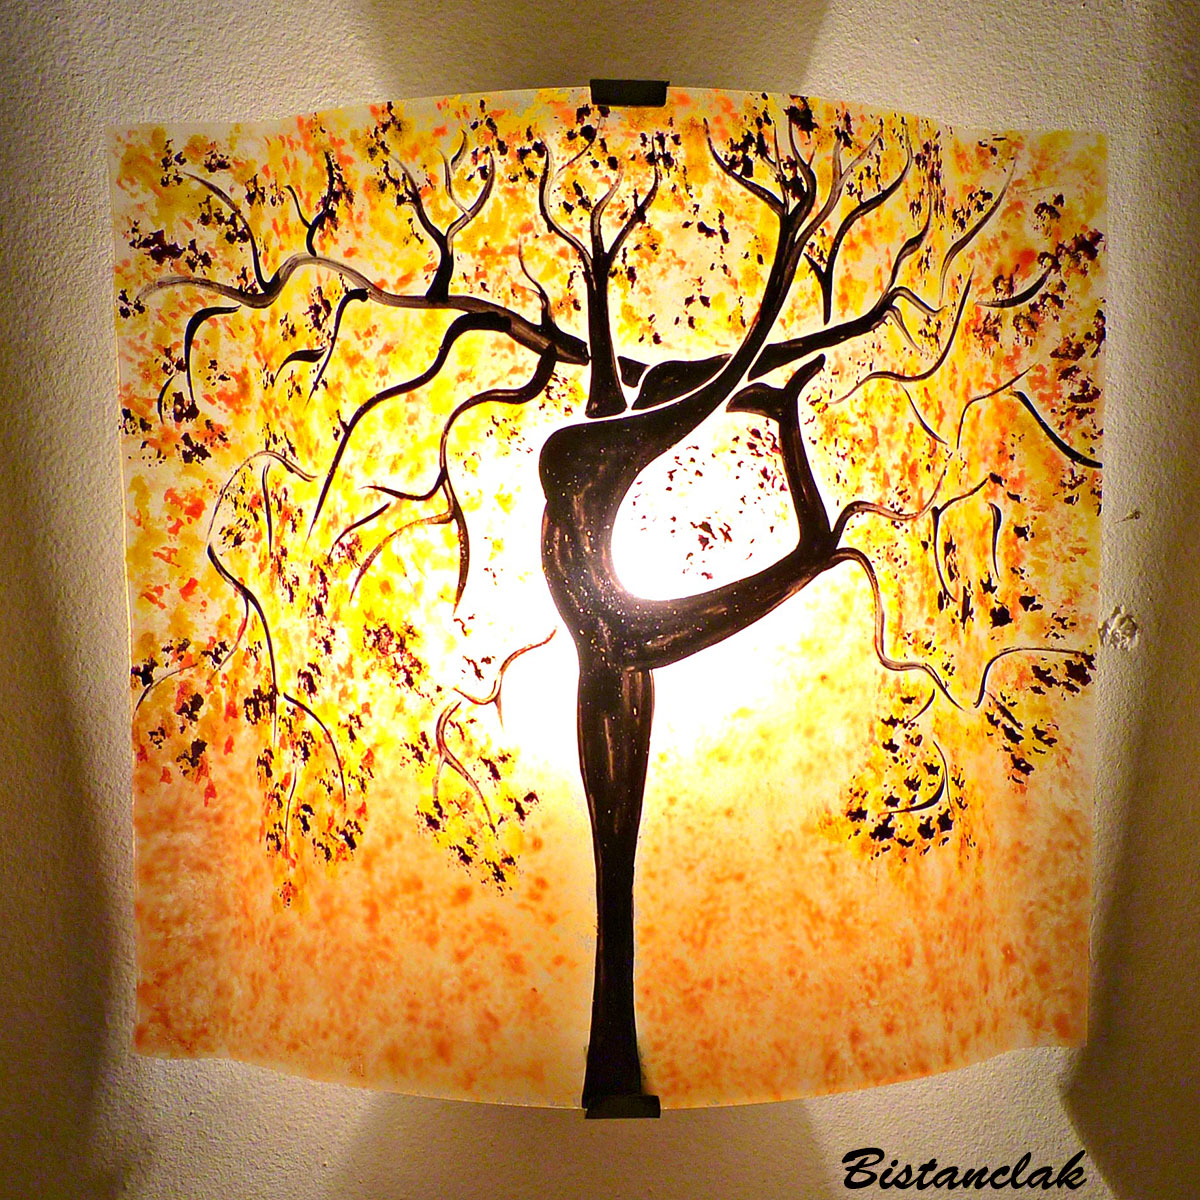 Applique murale sable jaune bordeau motif arbre danseuse